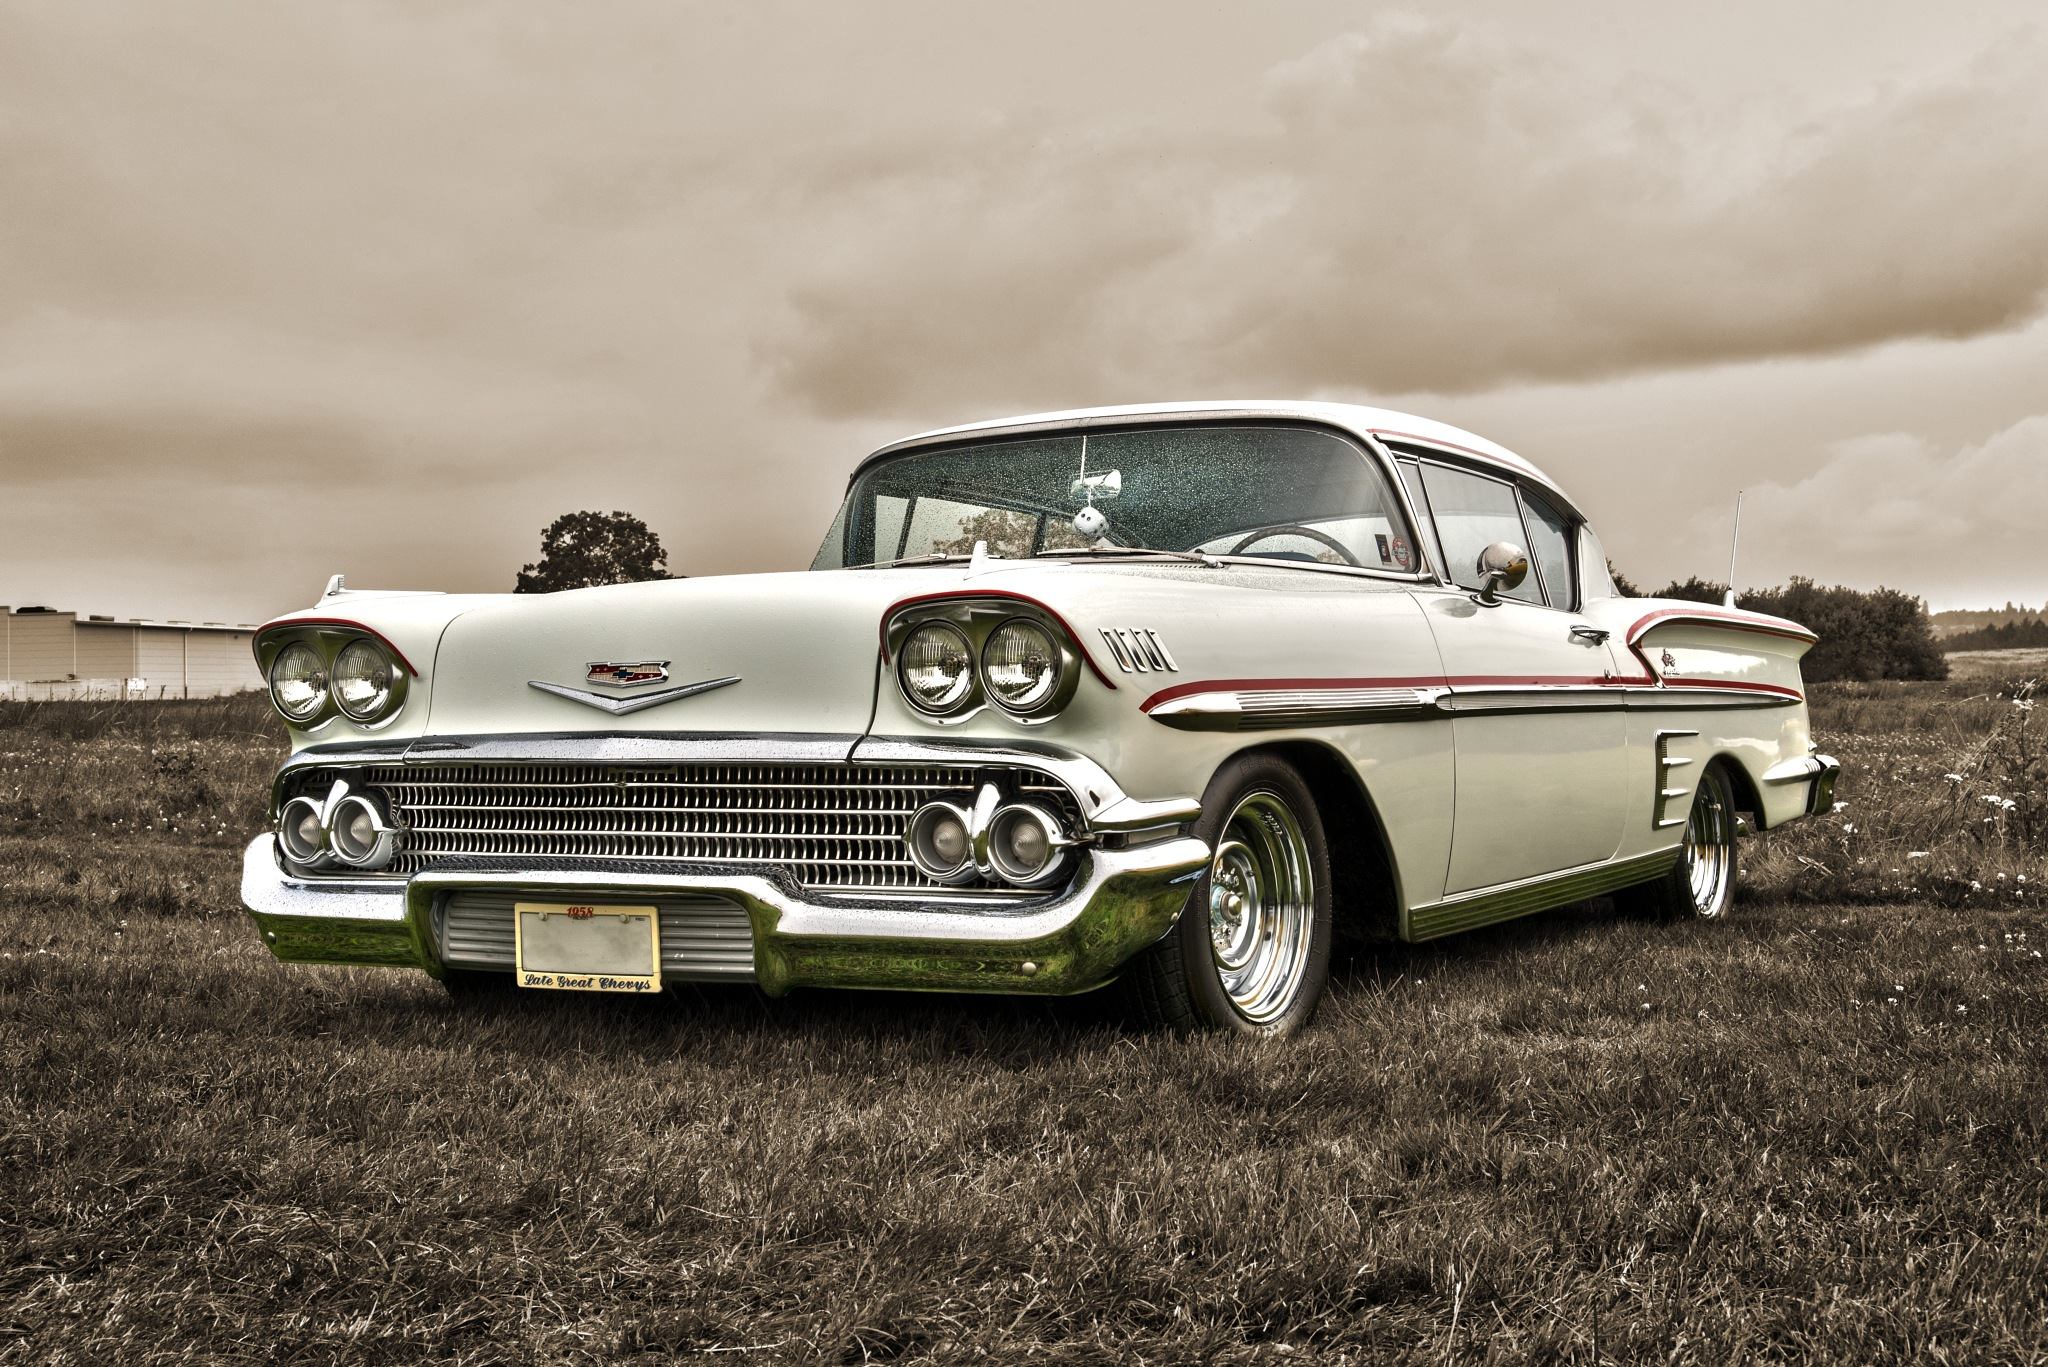 Chevrolet Impala - Sepia by Linda Persson